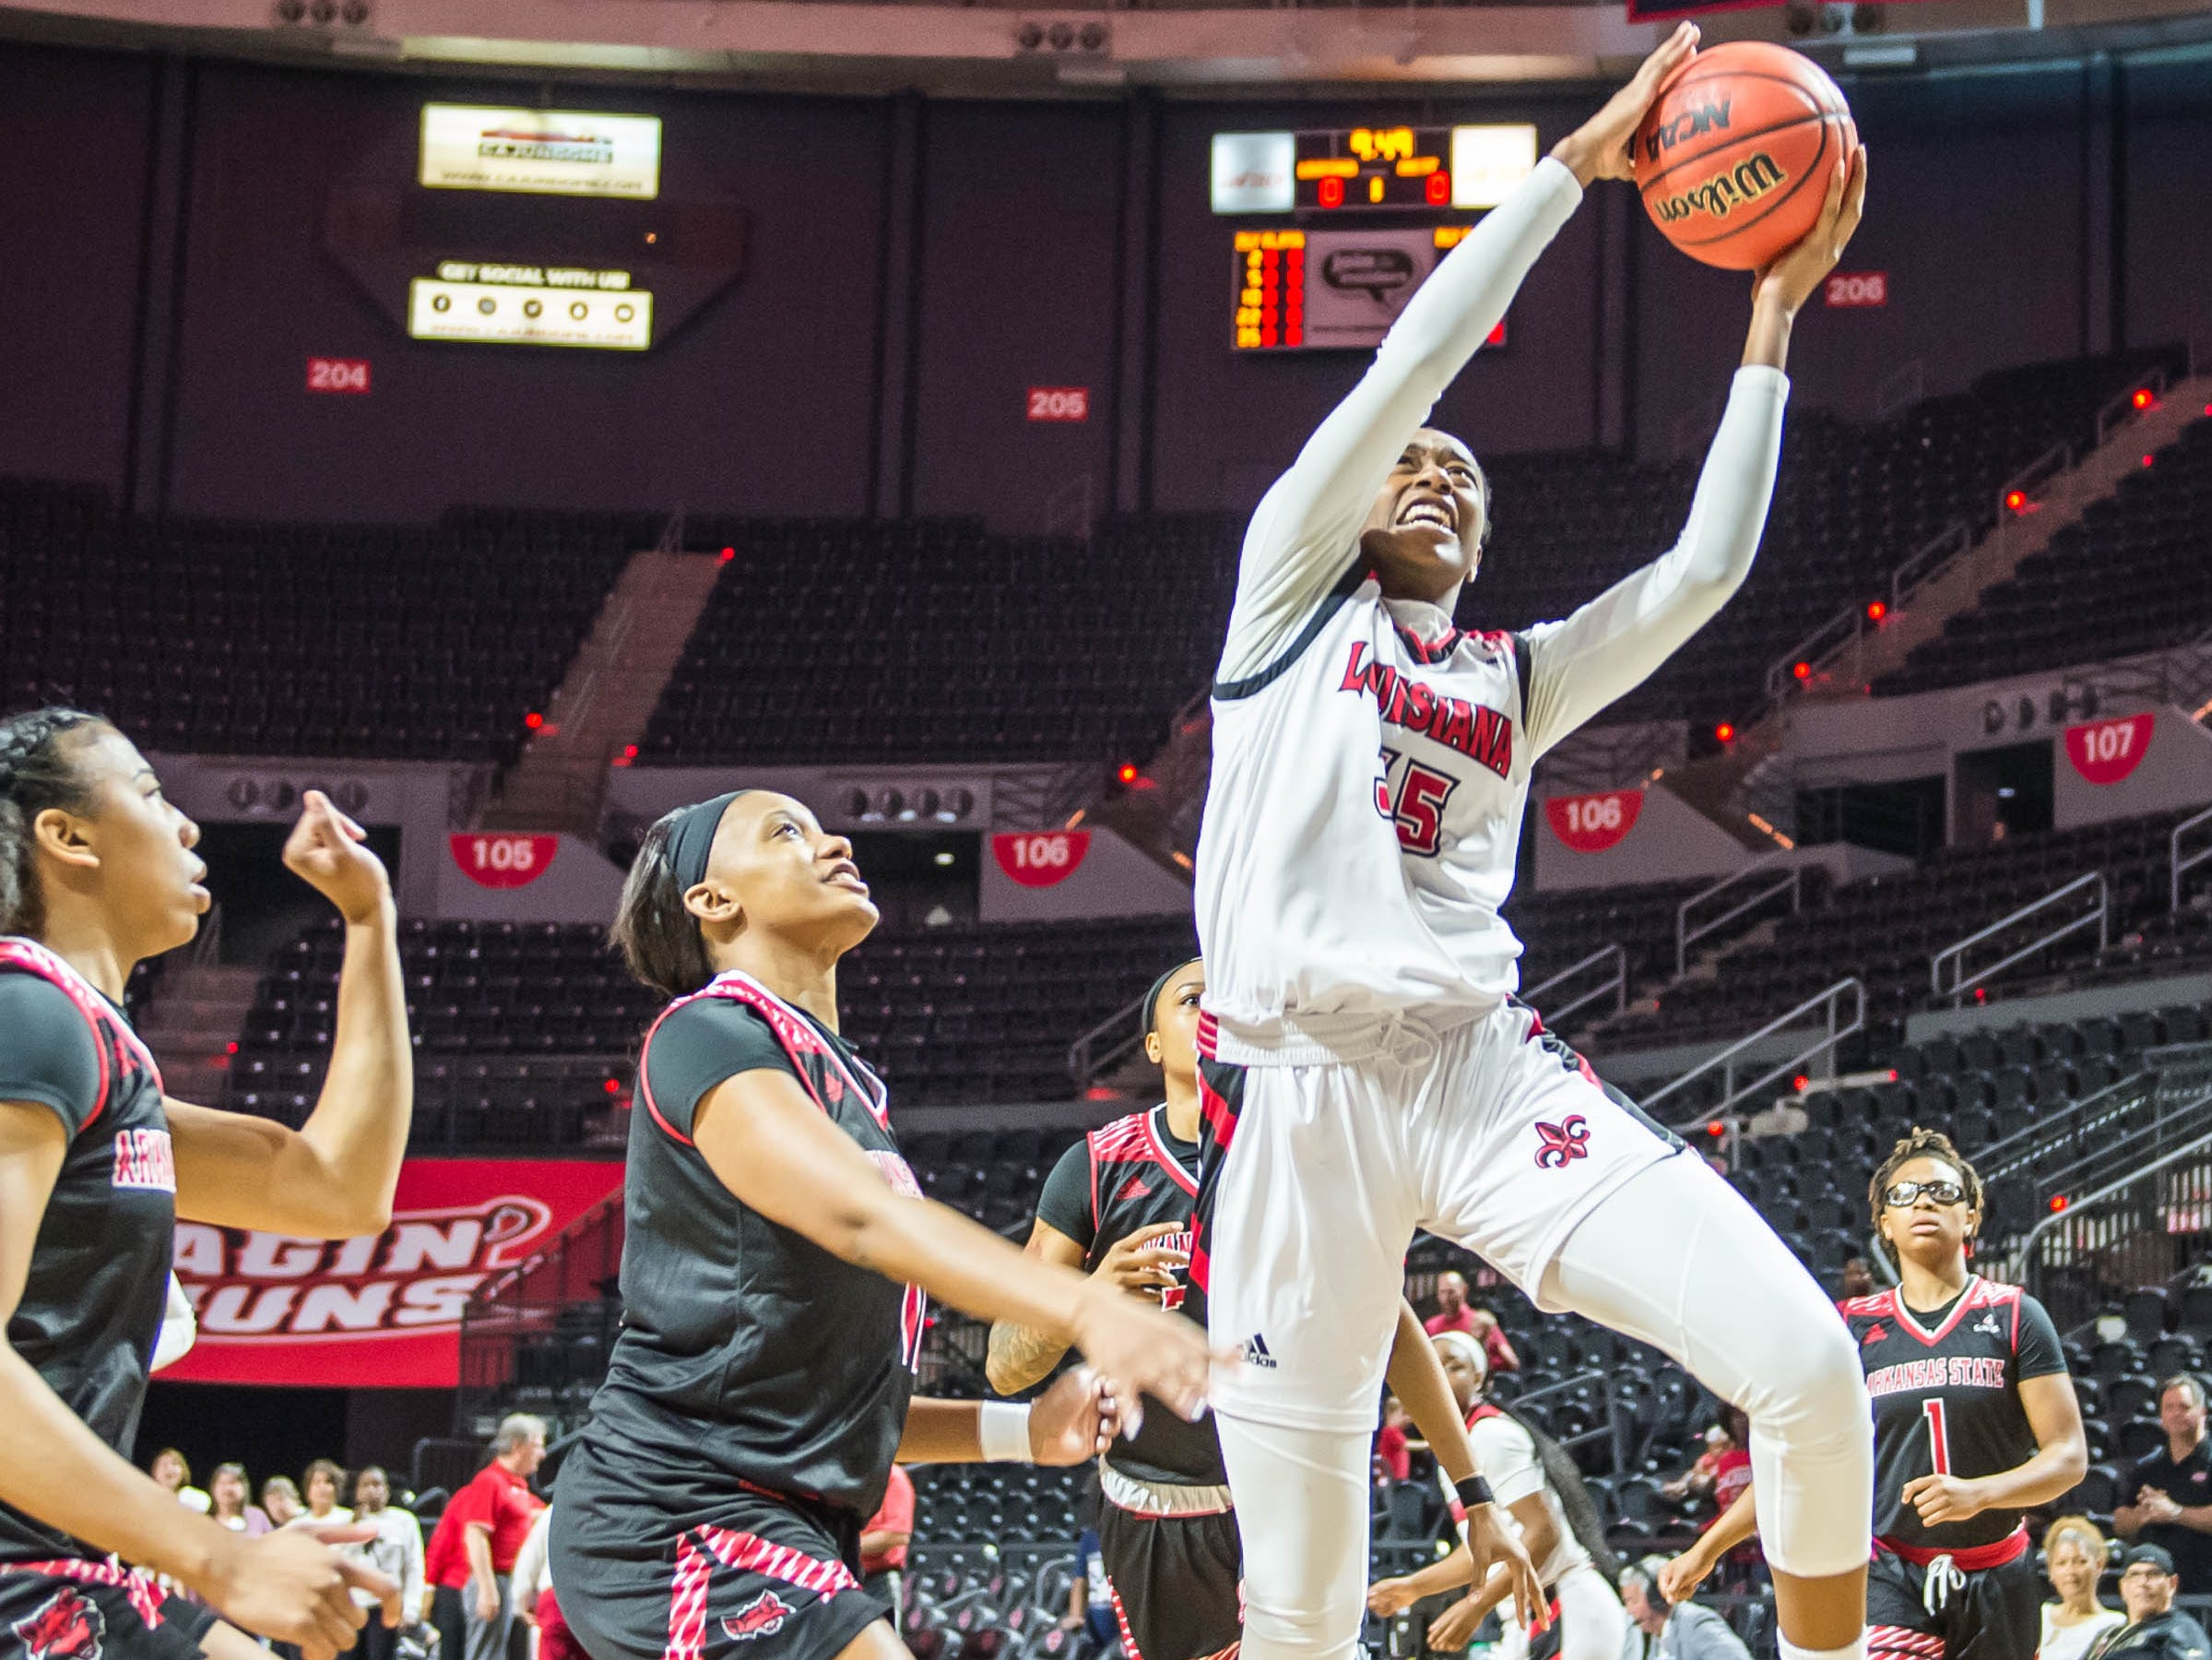 Cajuns center Ty'Reona Doucet (35) takes the ball to the basket as the Cajuns women's basketball team plays the Arkansas State Red Wolves at the Cajundome on Saturday, March 9, 2019.